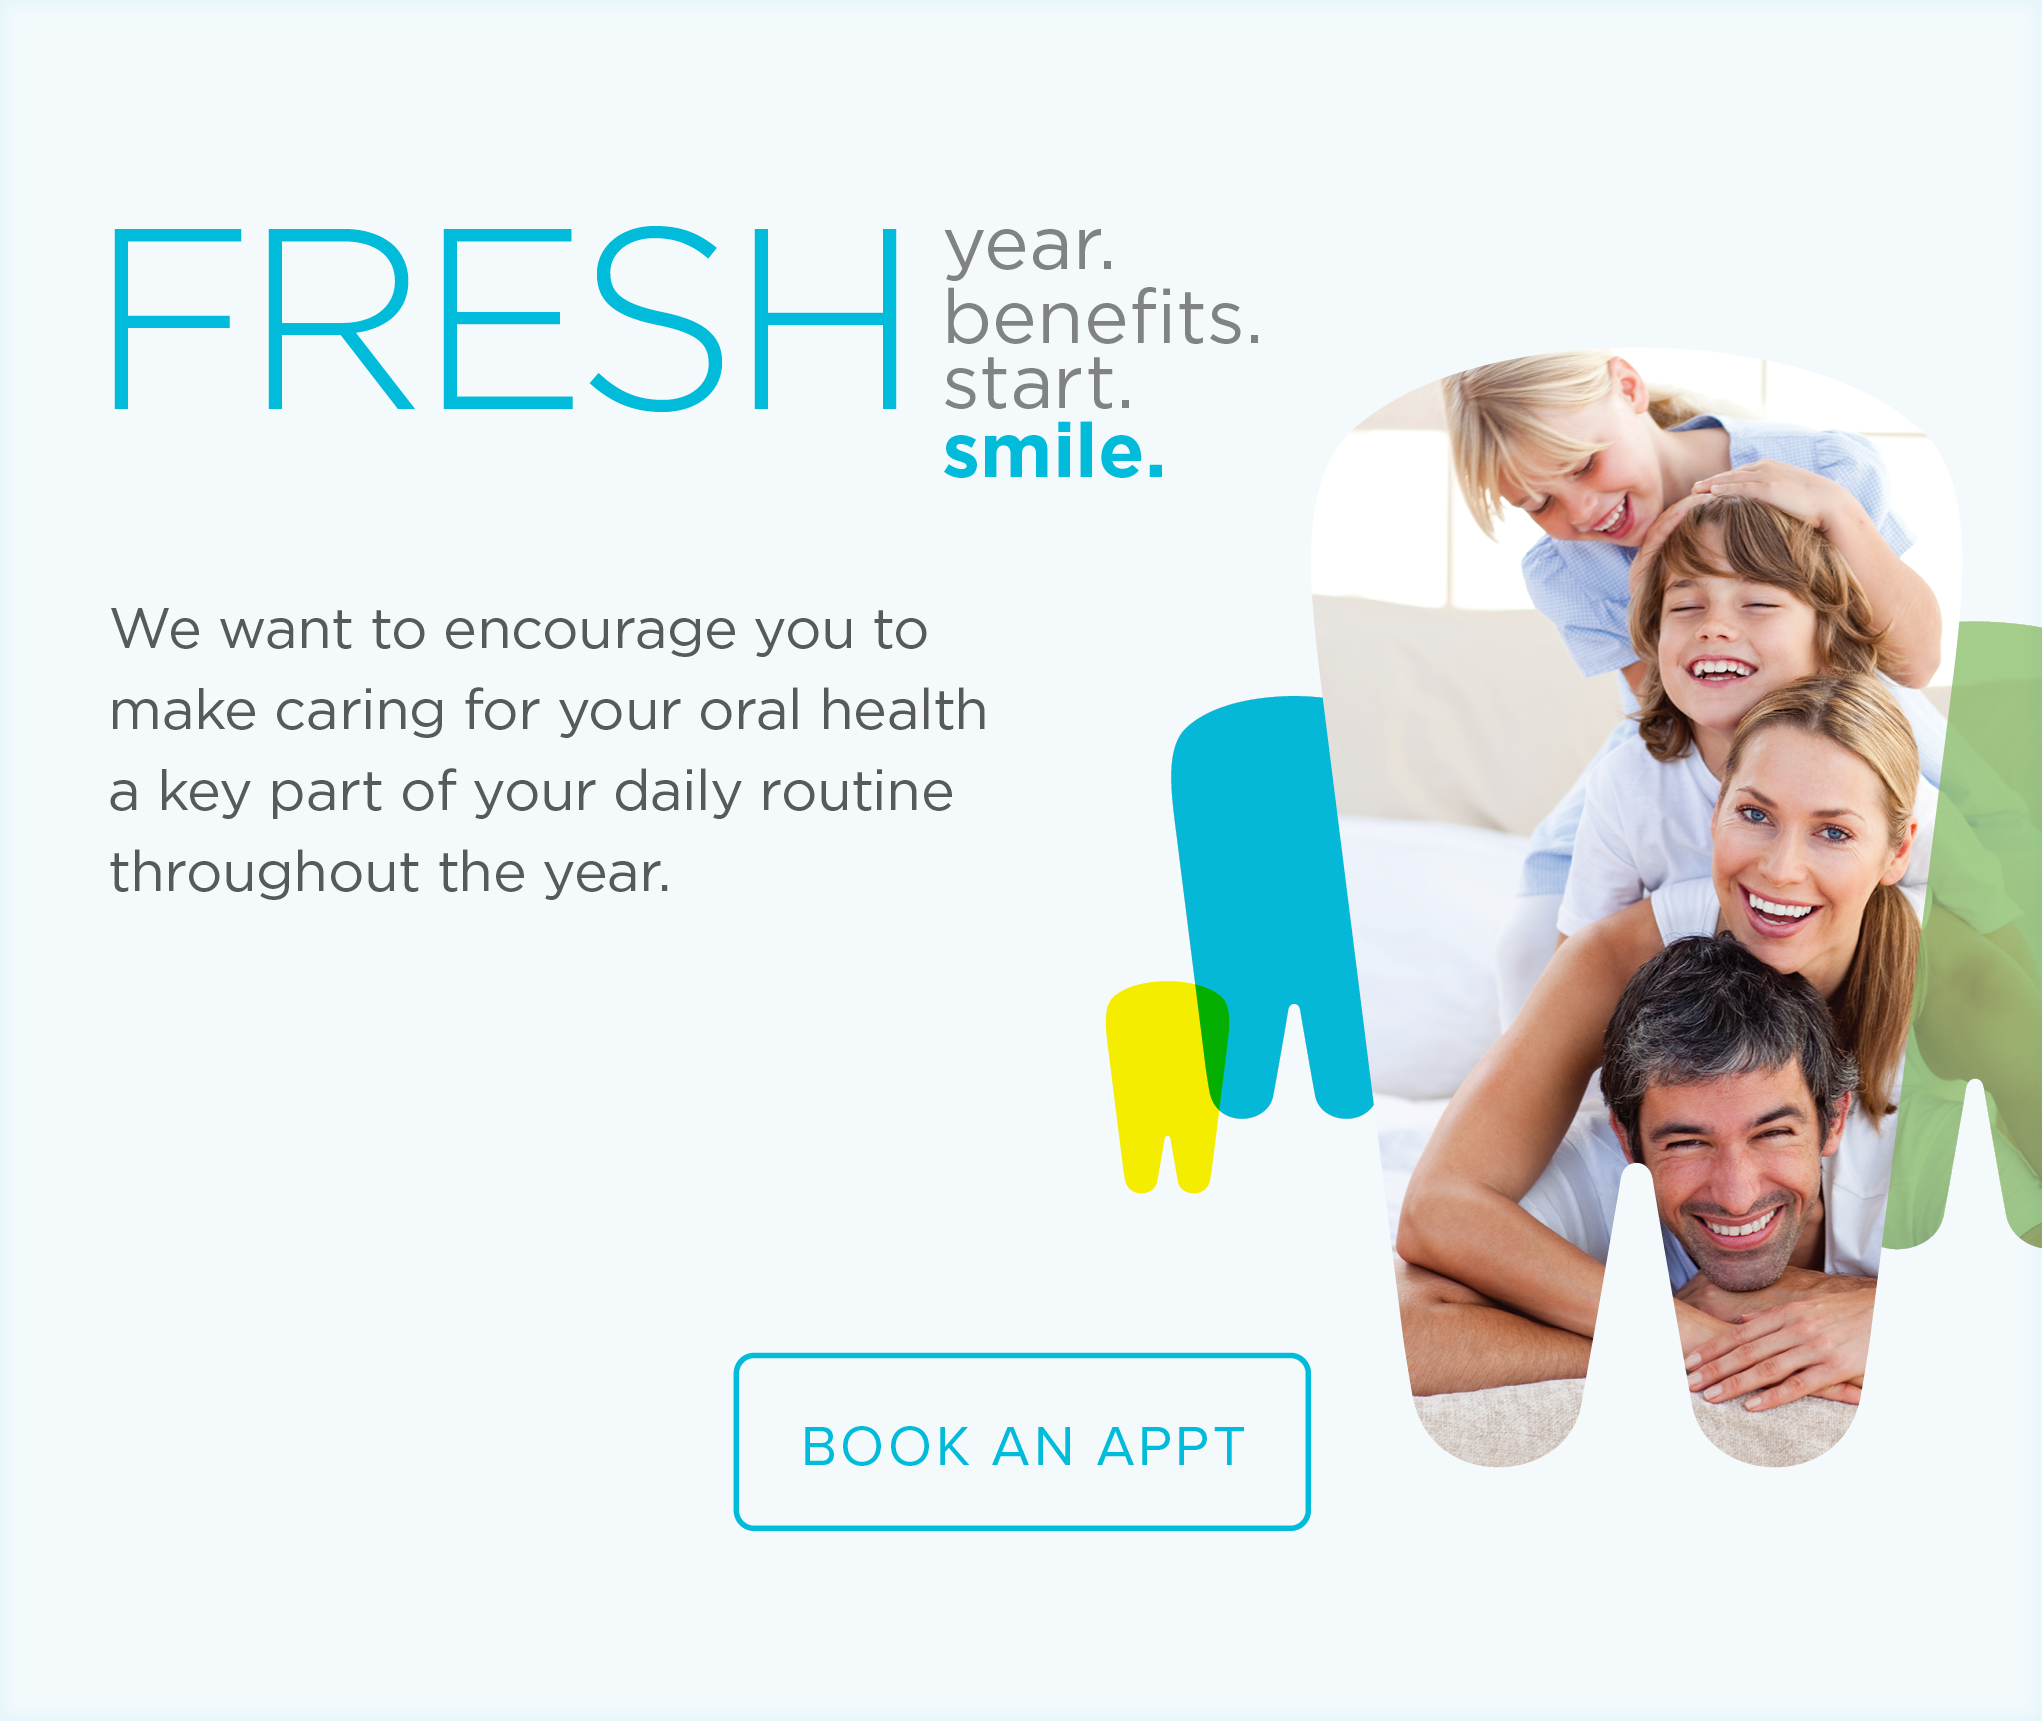 N. Rancho Cucamonga Dental Group and Orthodontics - Make the Most of Your Benefits